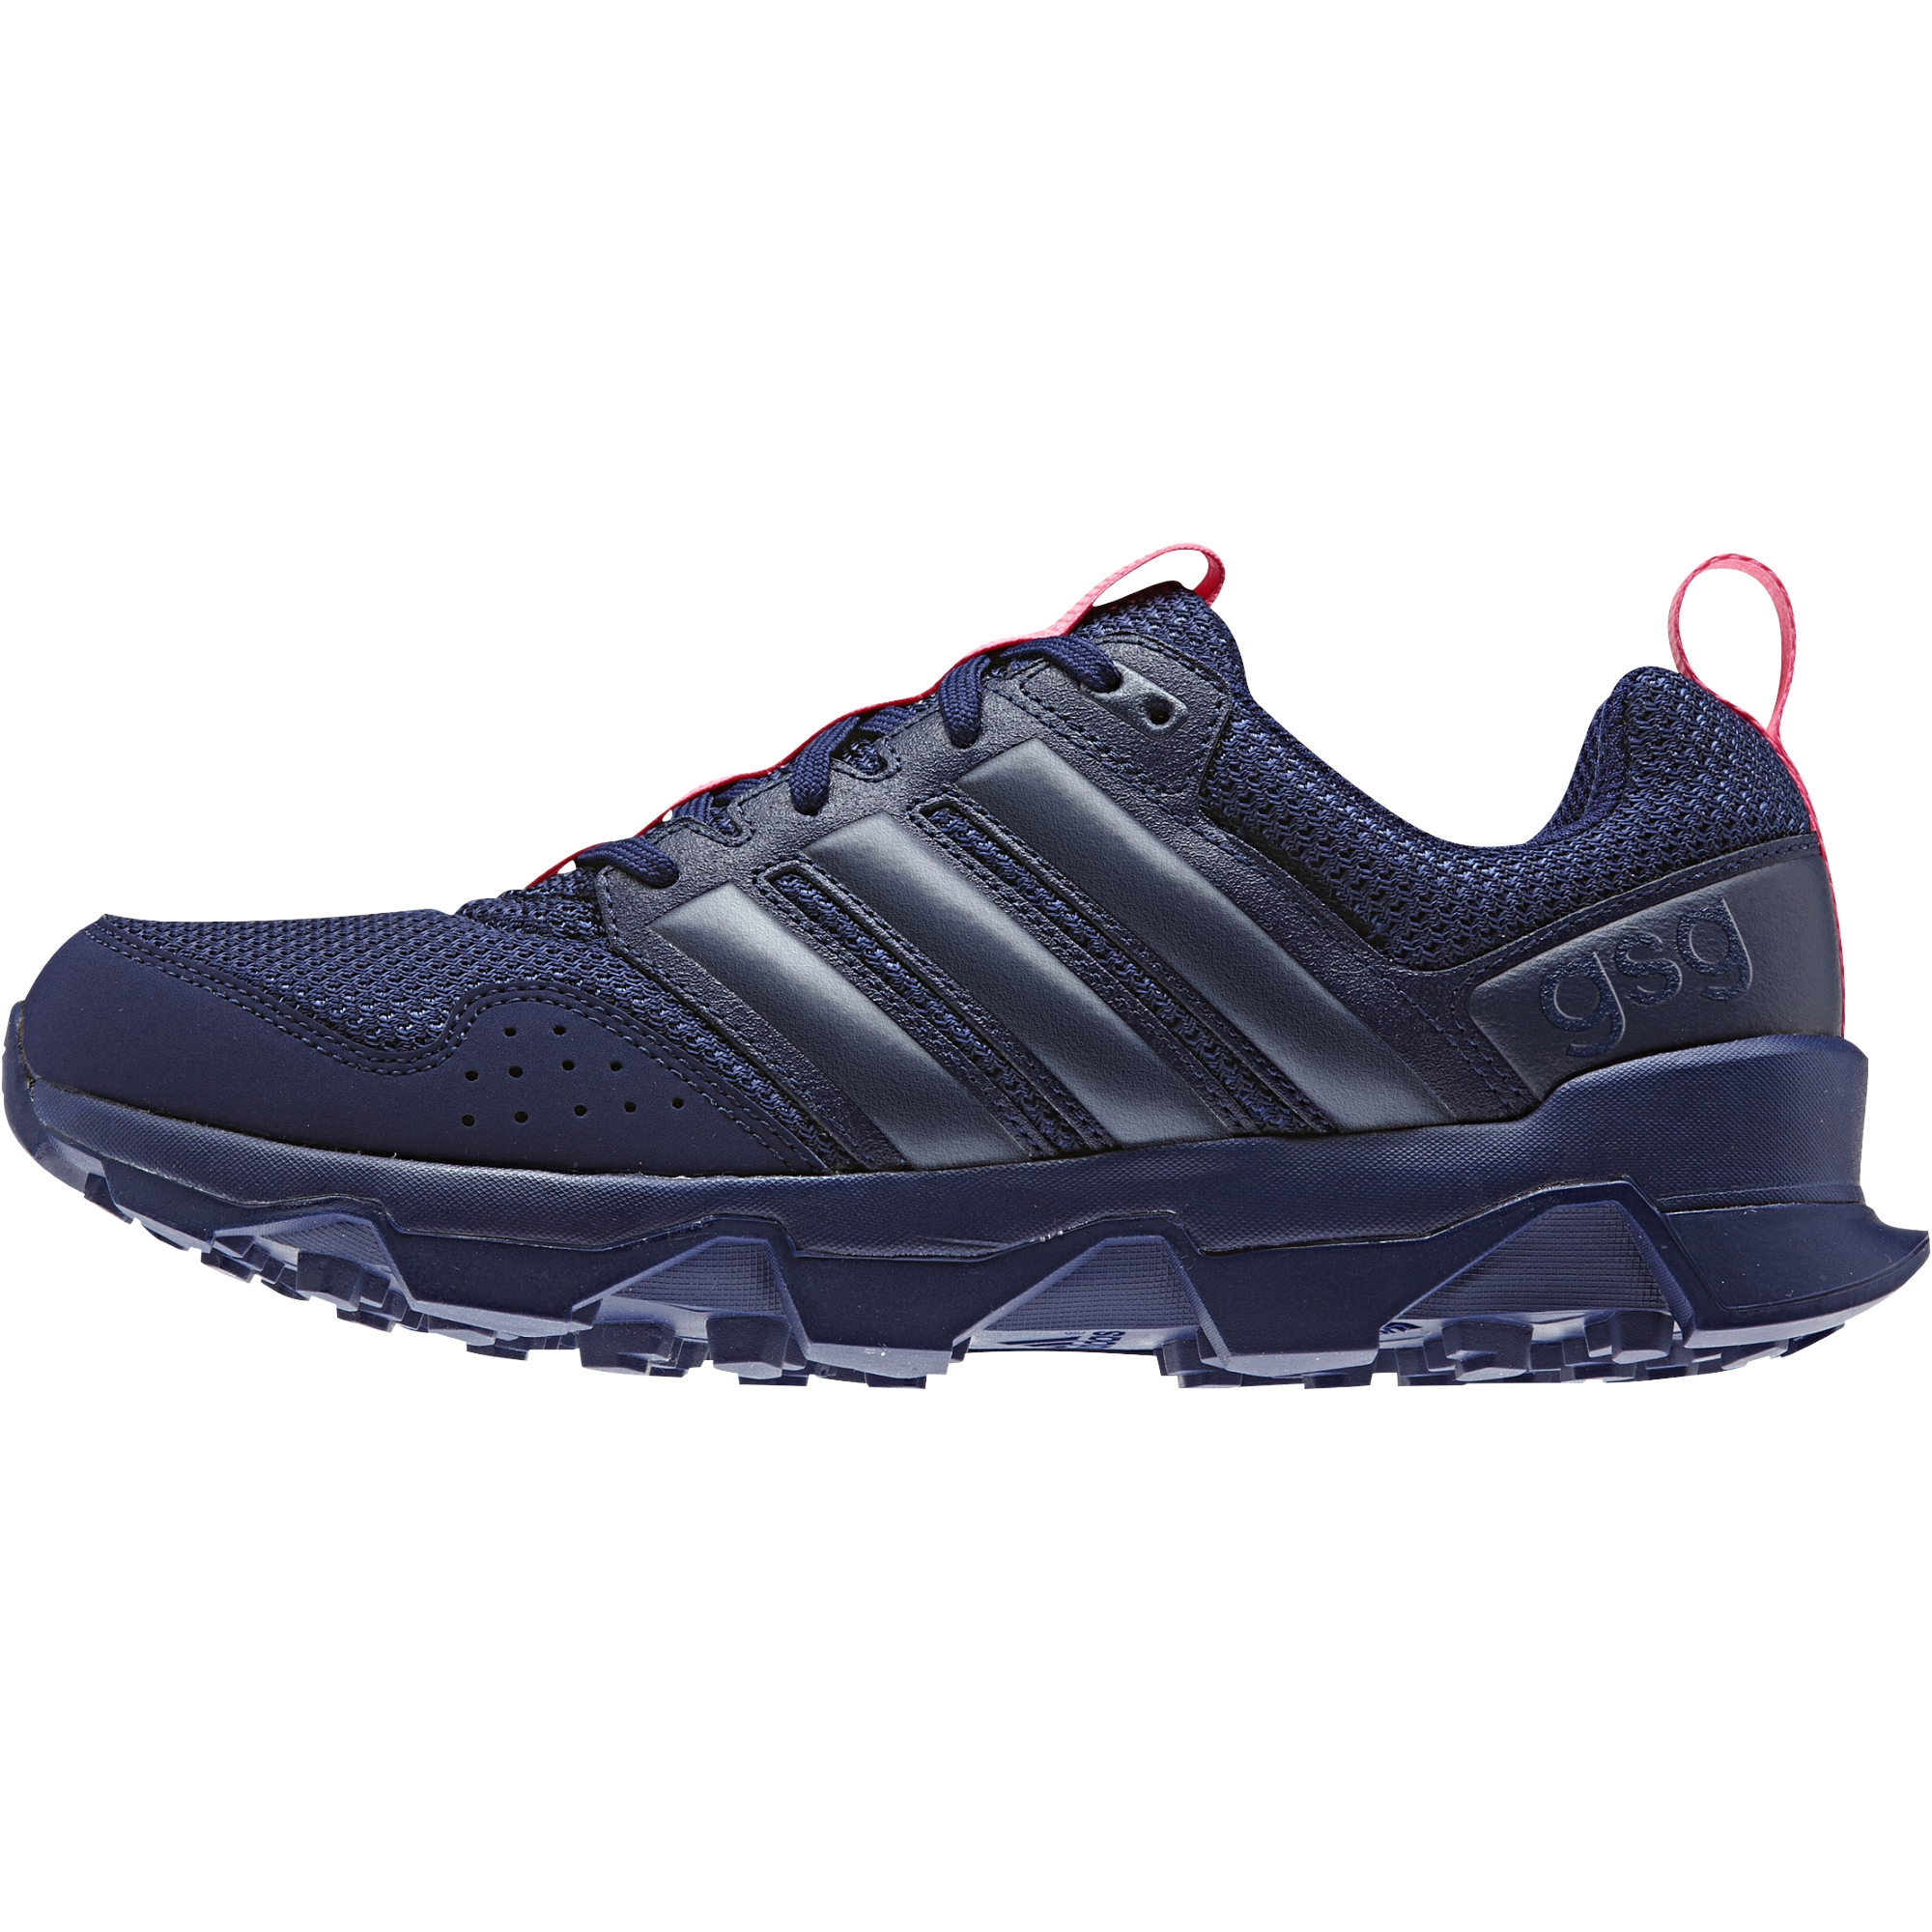 Adidas Gsg Tr Shoes